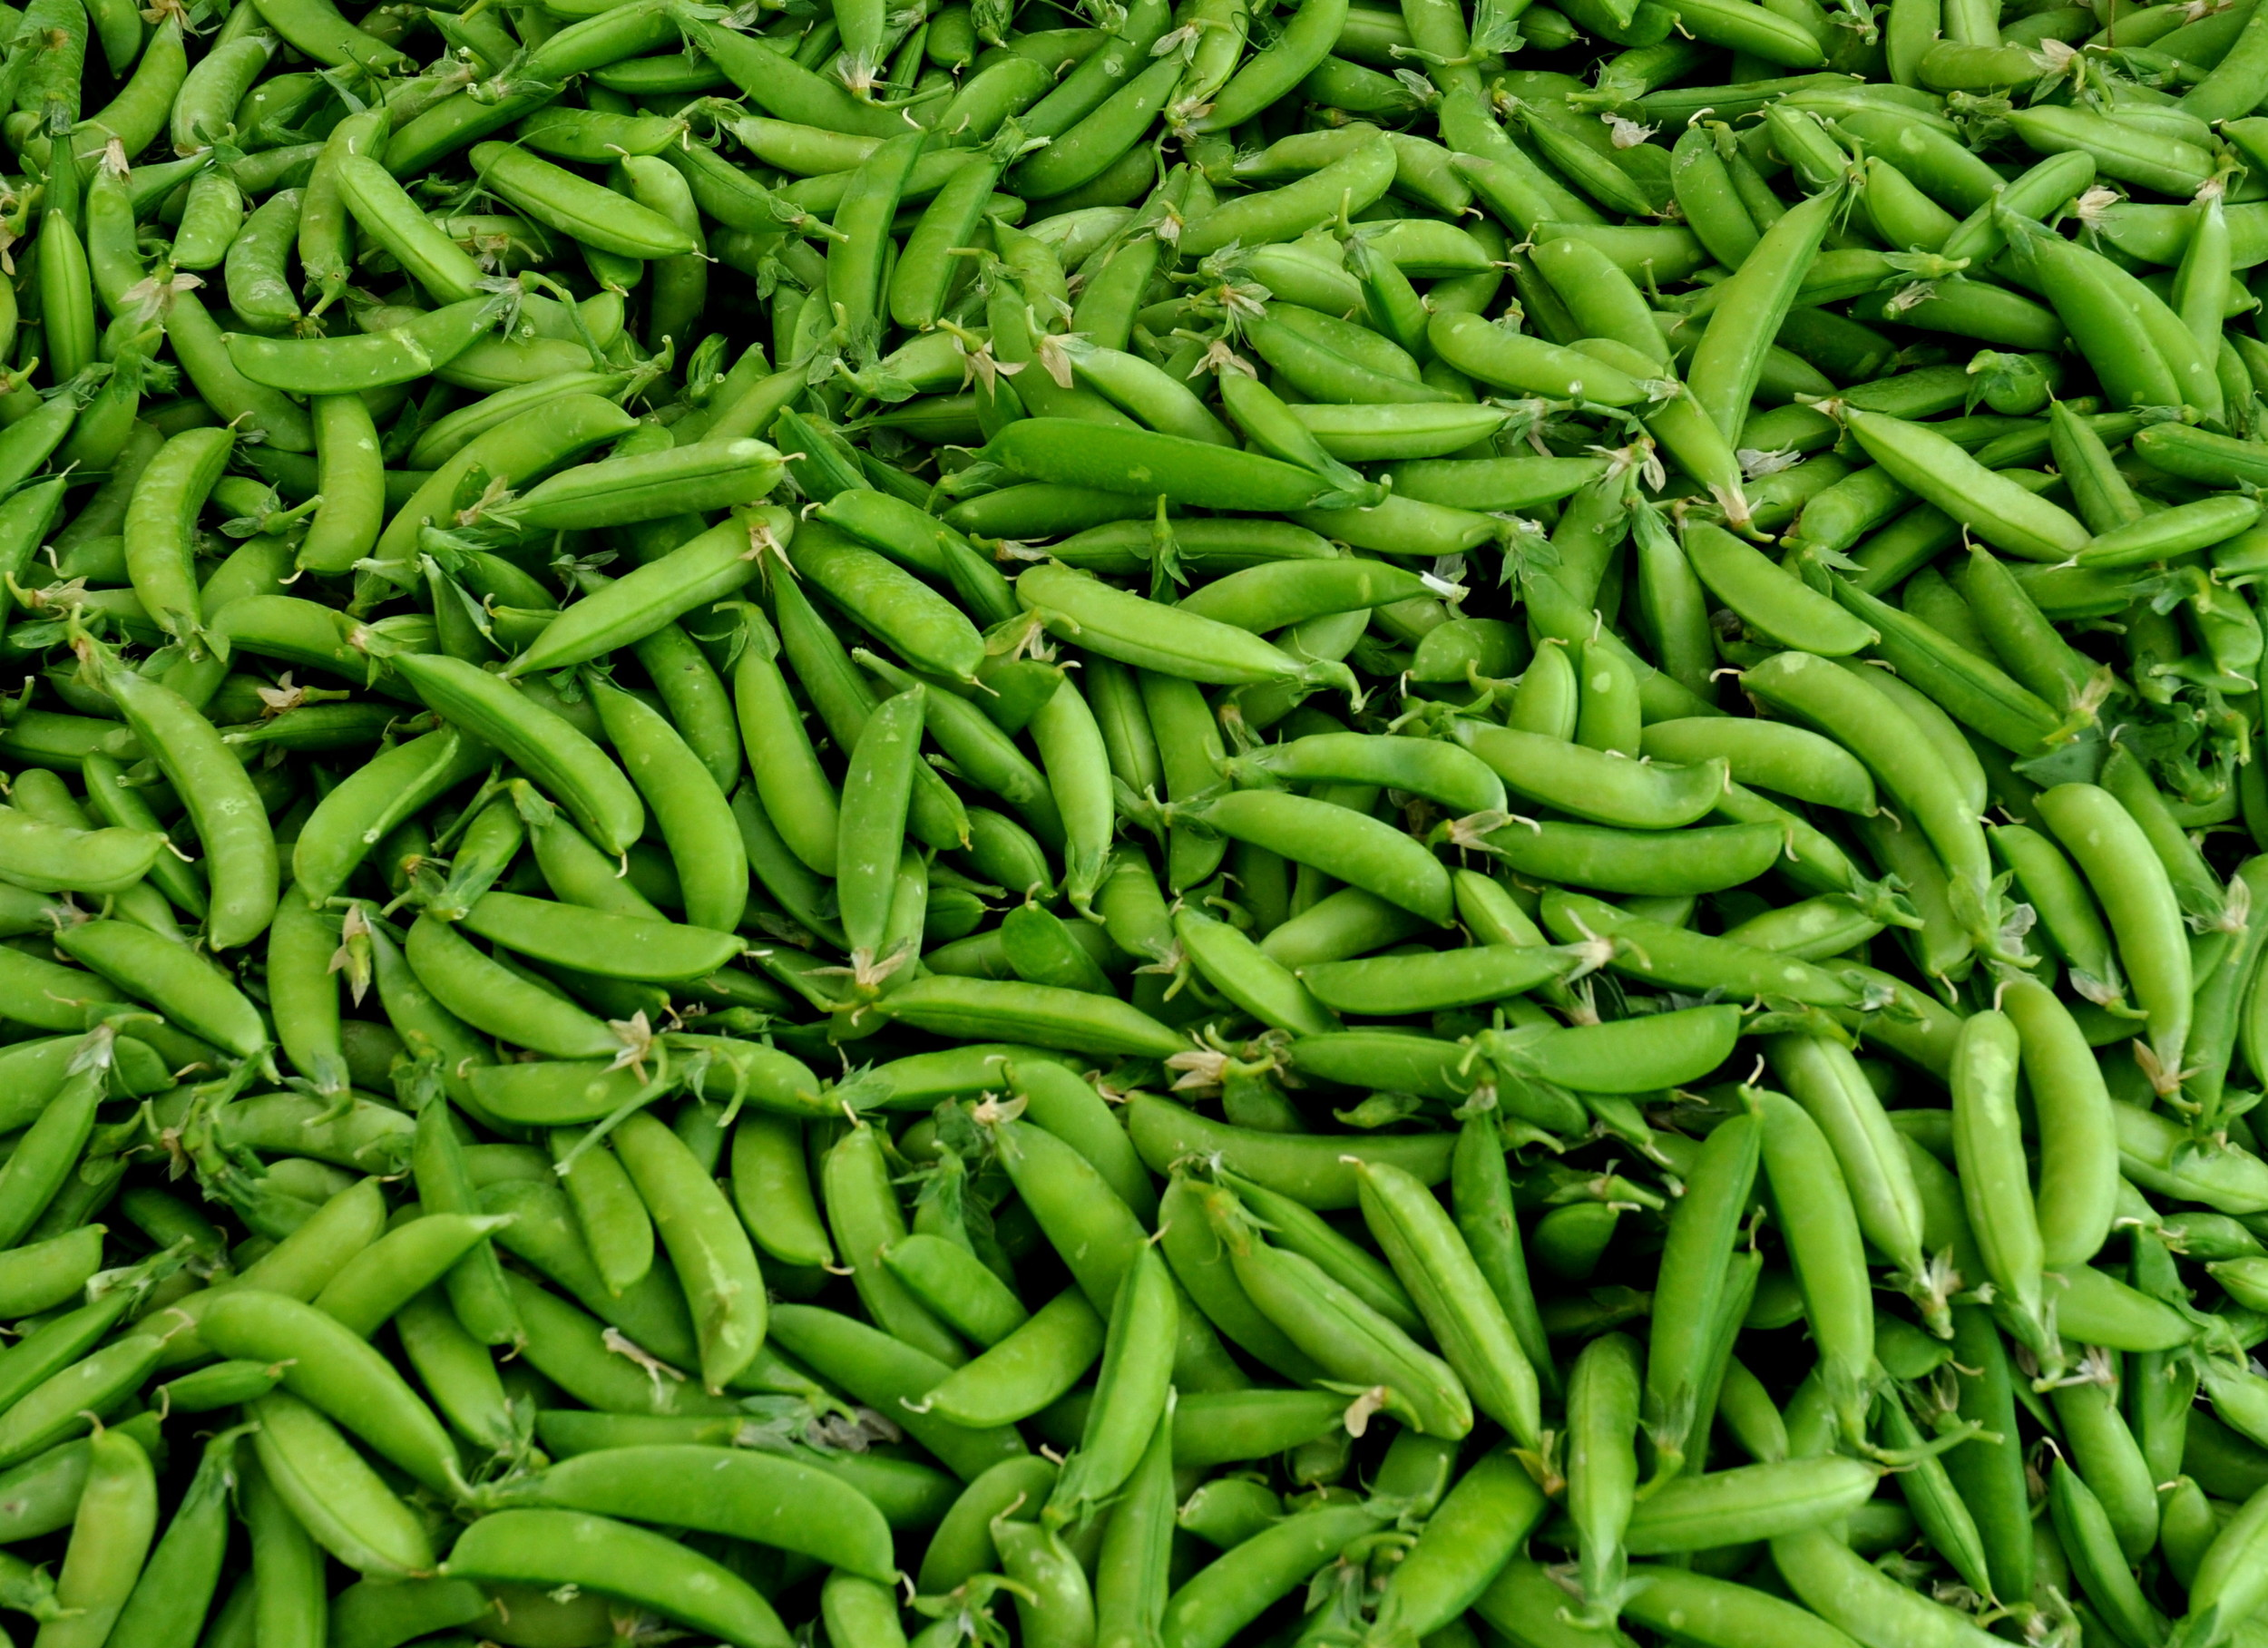 Sugar snap peas from Alvarez Organic Farms. Photo copyright 2013 by Zachary D. Lyons.